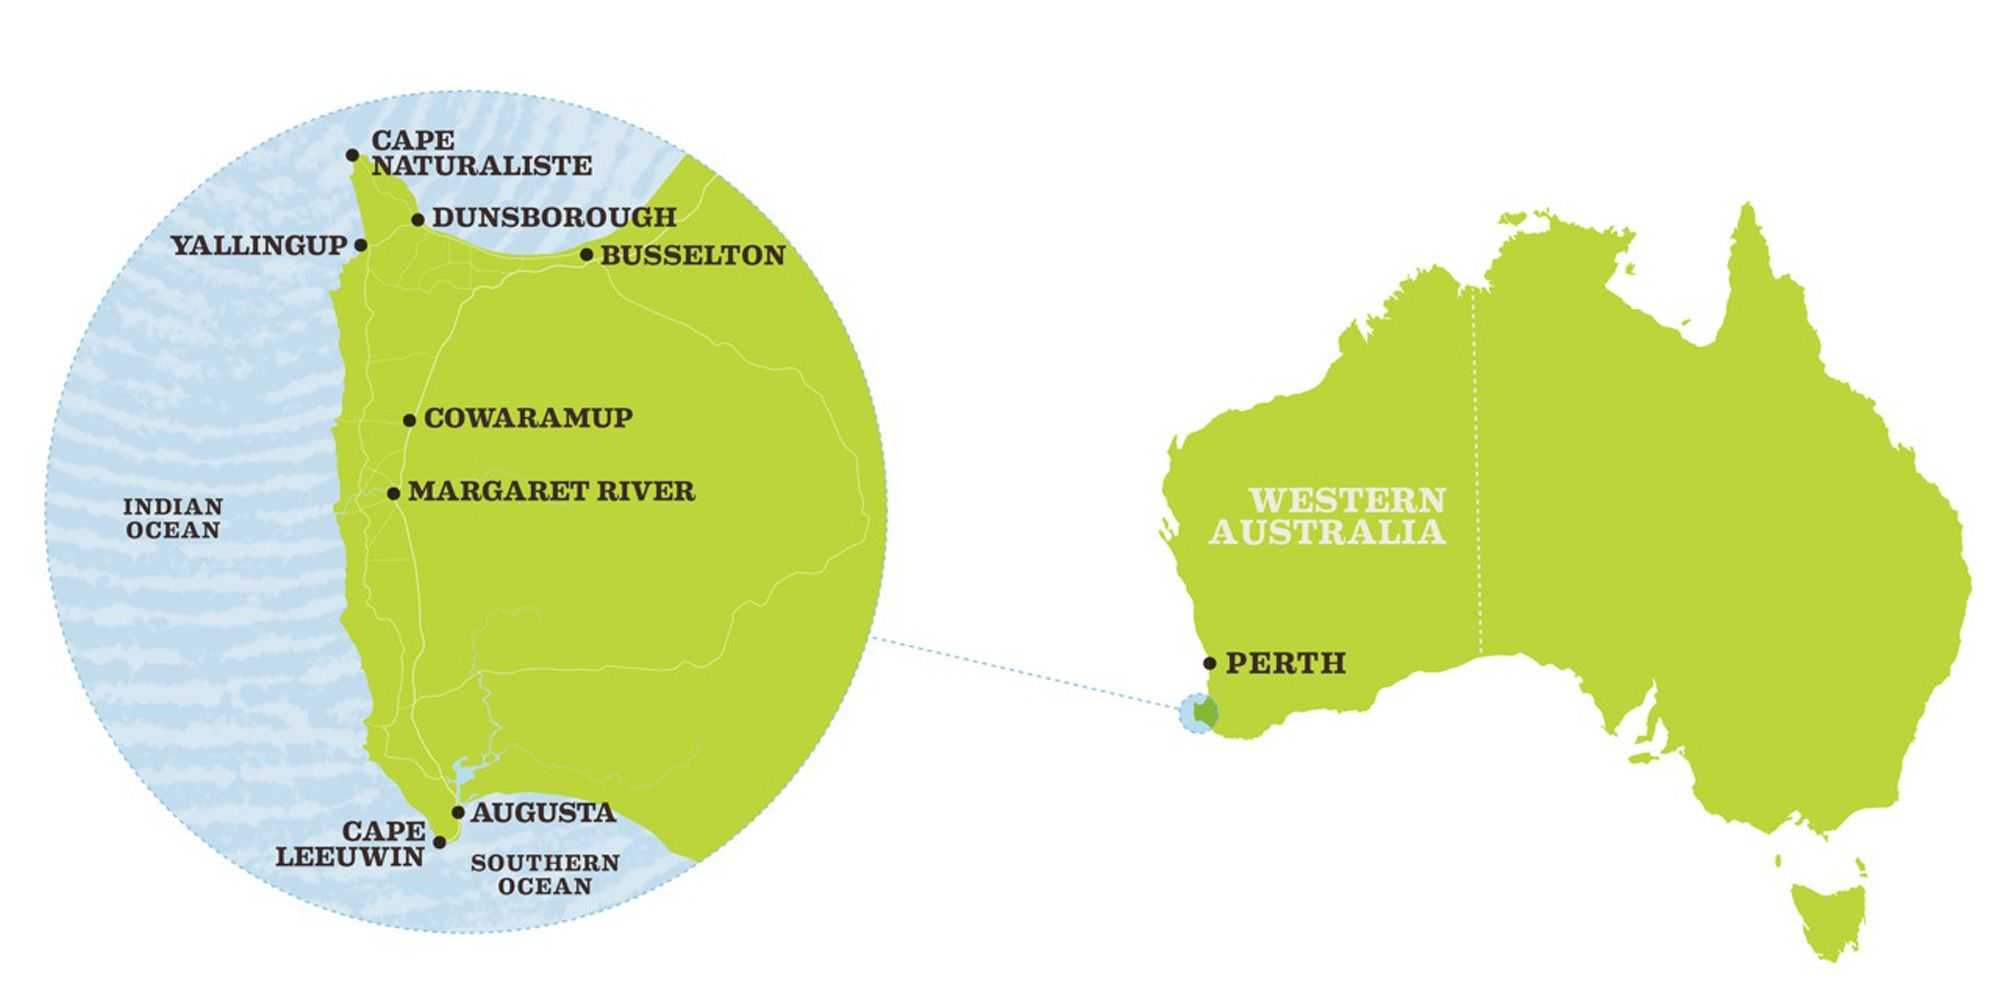 New land use for media margaret river australia map statements new land use for media margaret river australia map statements minister launches new land use for western n abattoirs western margaret river pinterest gumiabroncs Image collections